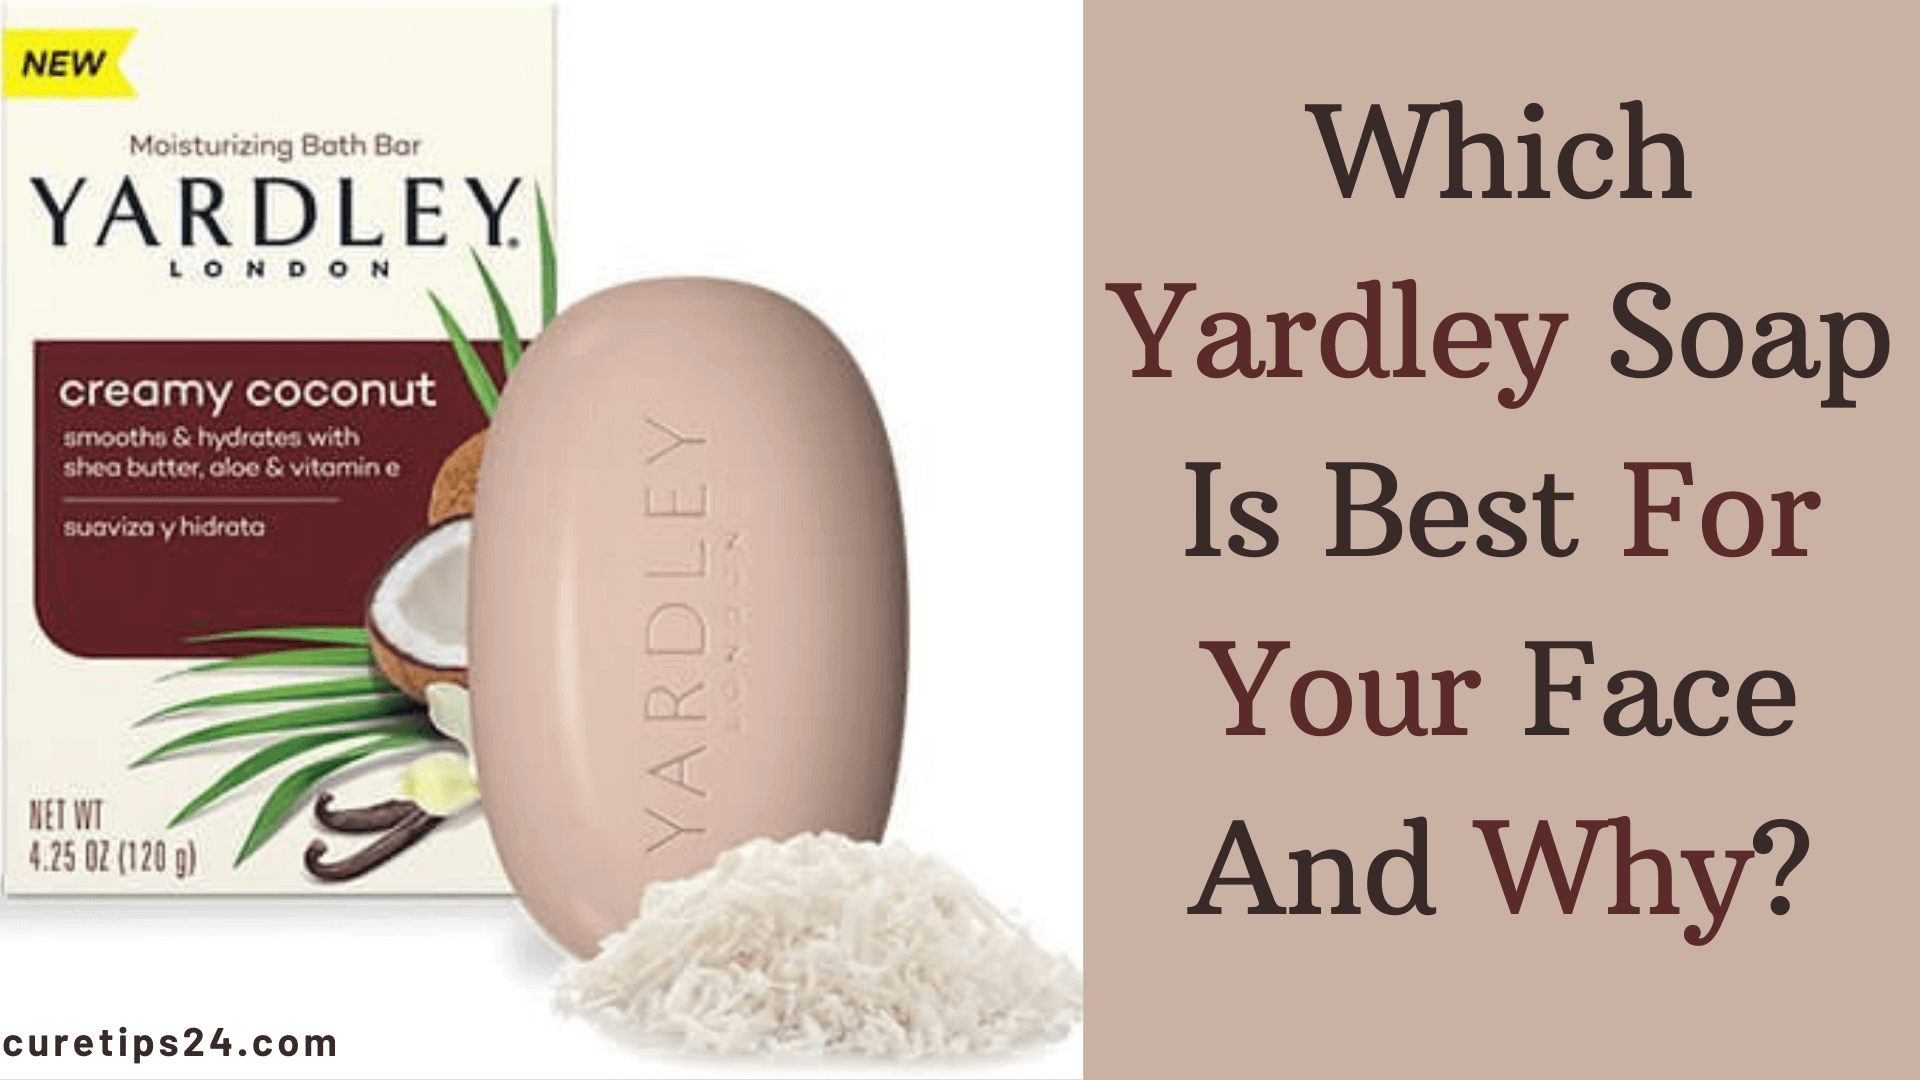 Which Yardley Soap Is Best For Your Face